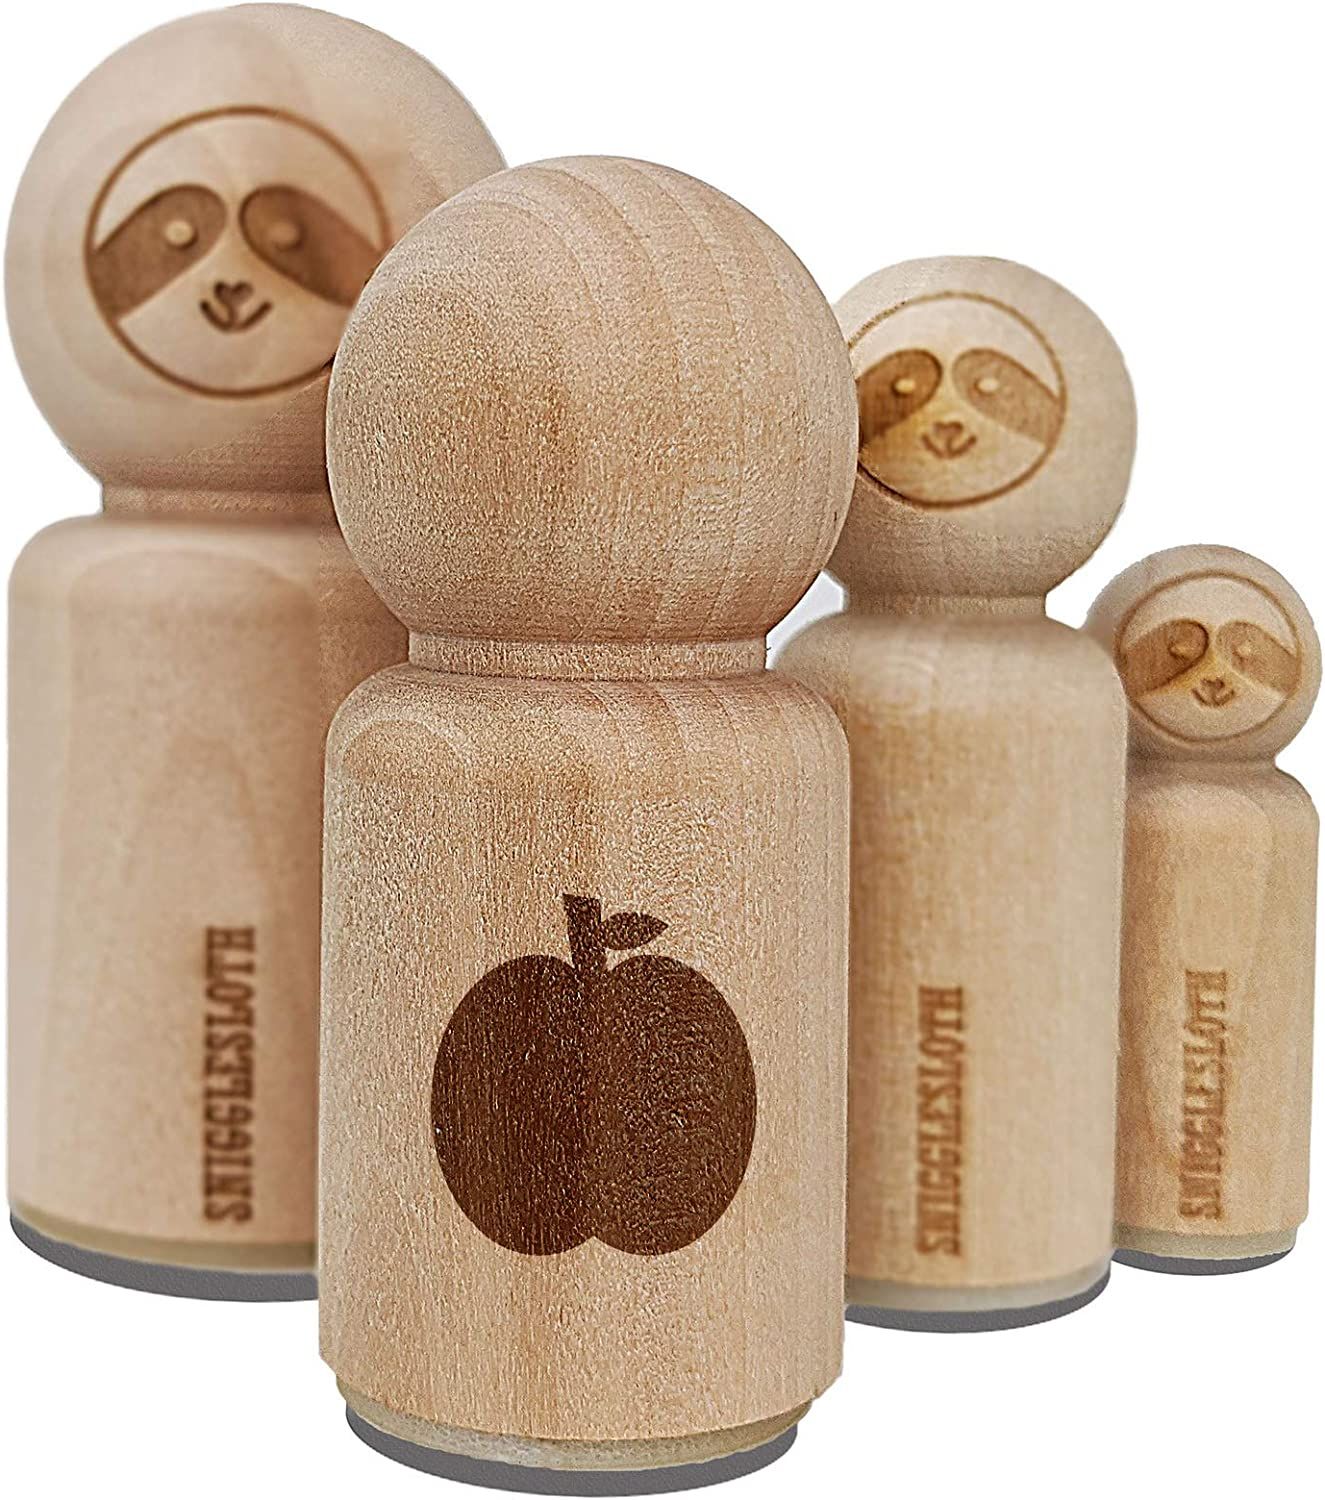 Apple Fruit Rubber Stamp for Stamping Crafting Planners - 1/2 Inch Mini